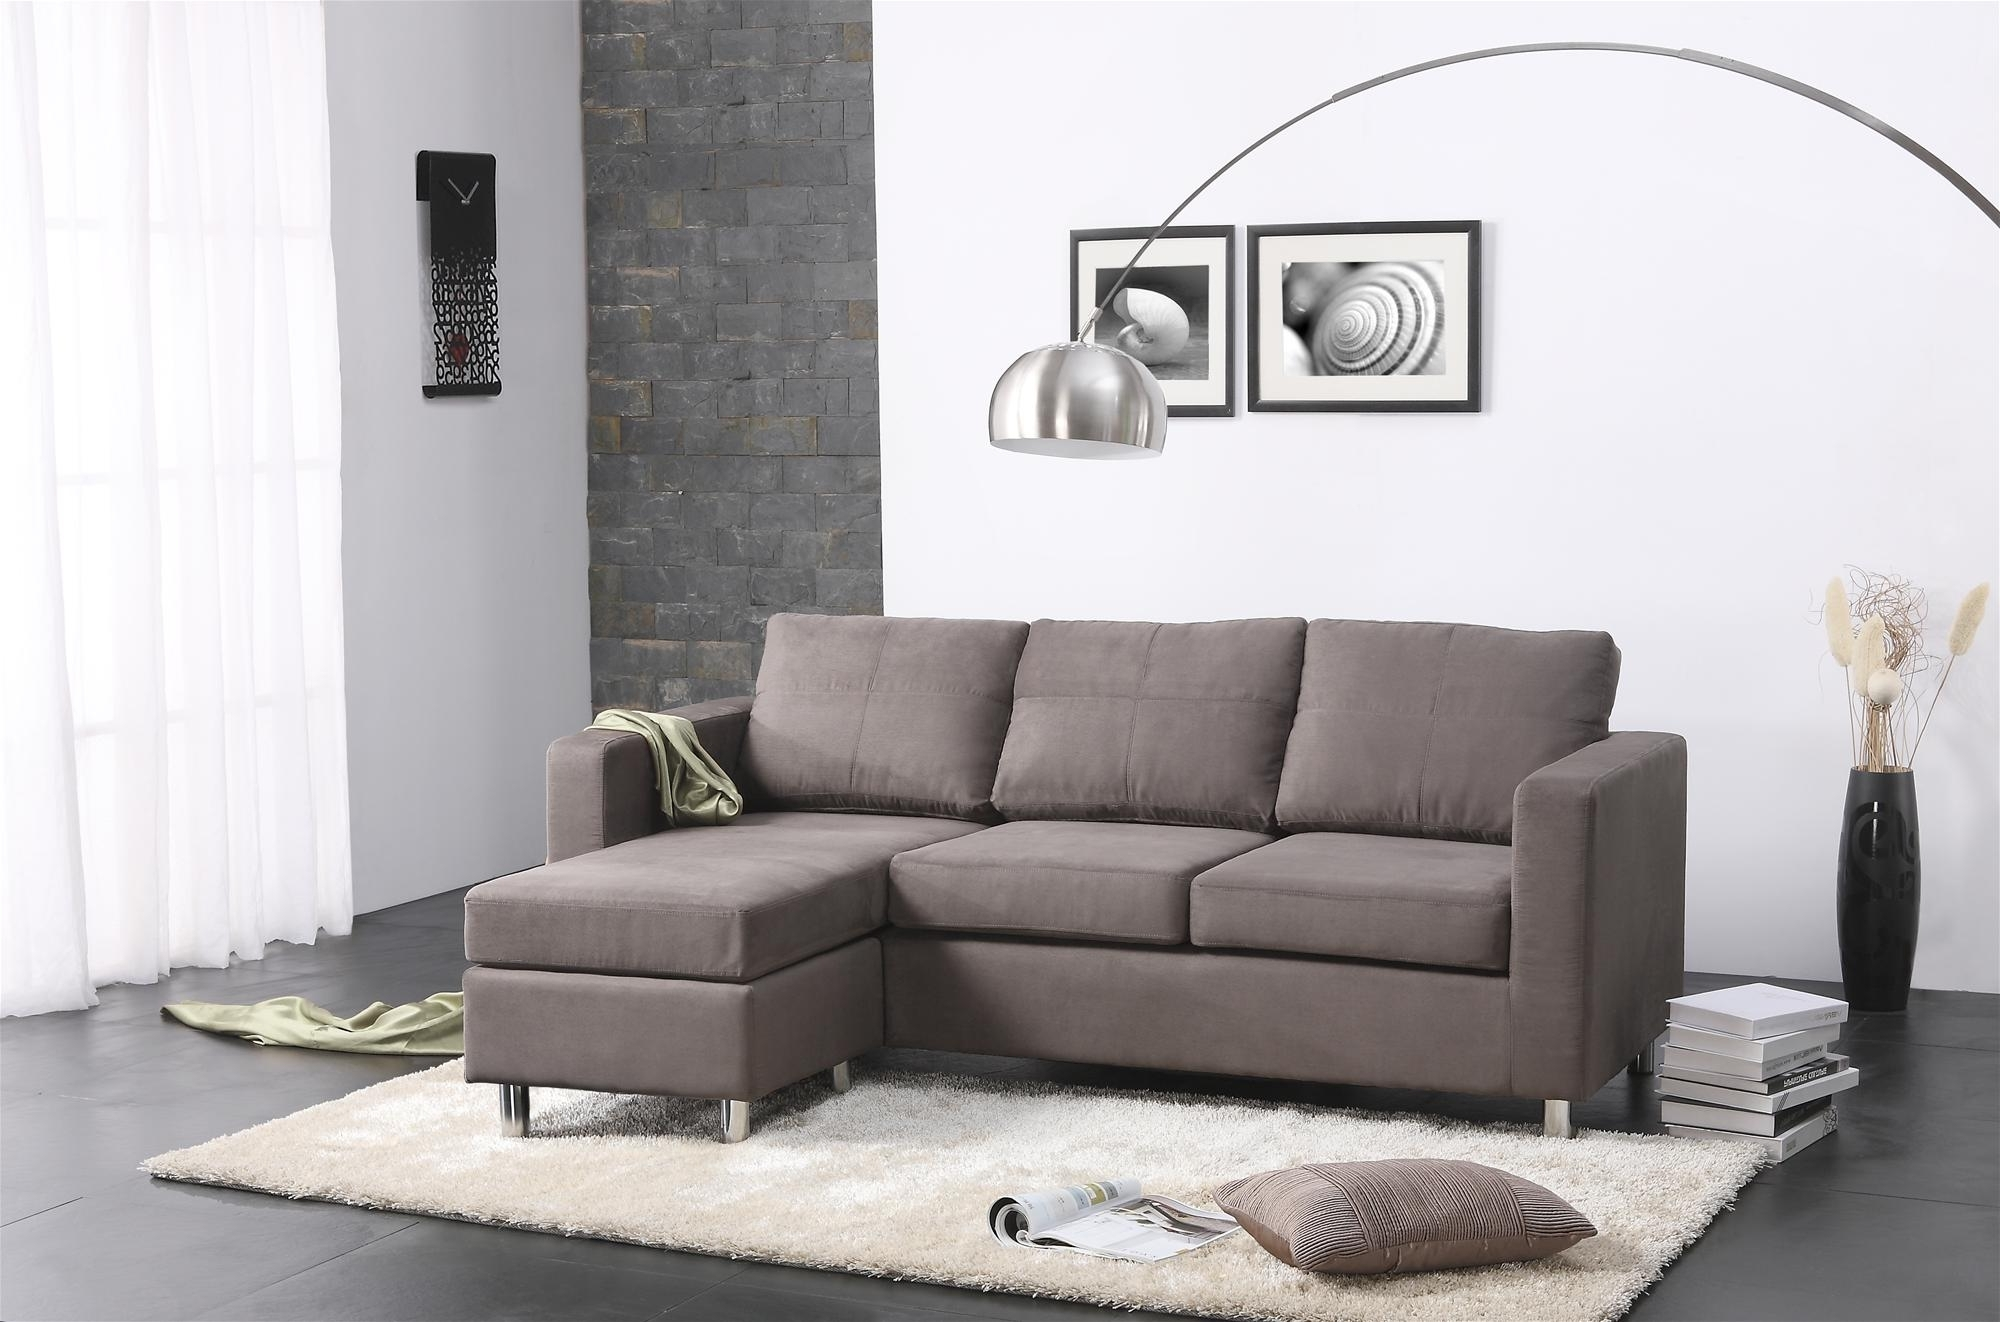 Modern Minimalist Living Room Design With Gray Microfiber Throughout Most Recently Released Tiny Sofas (View 15 of 15)